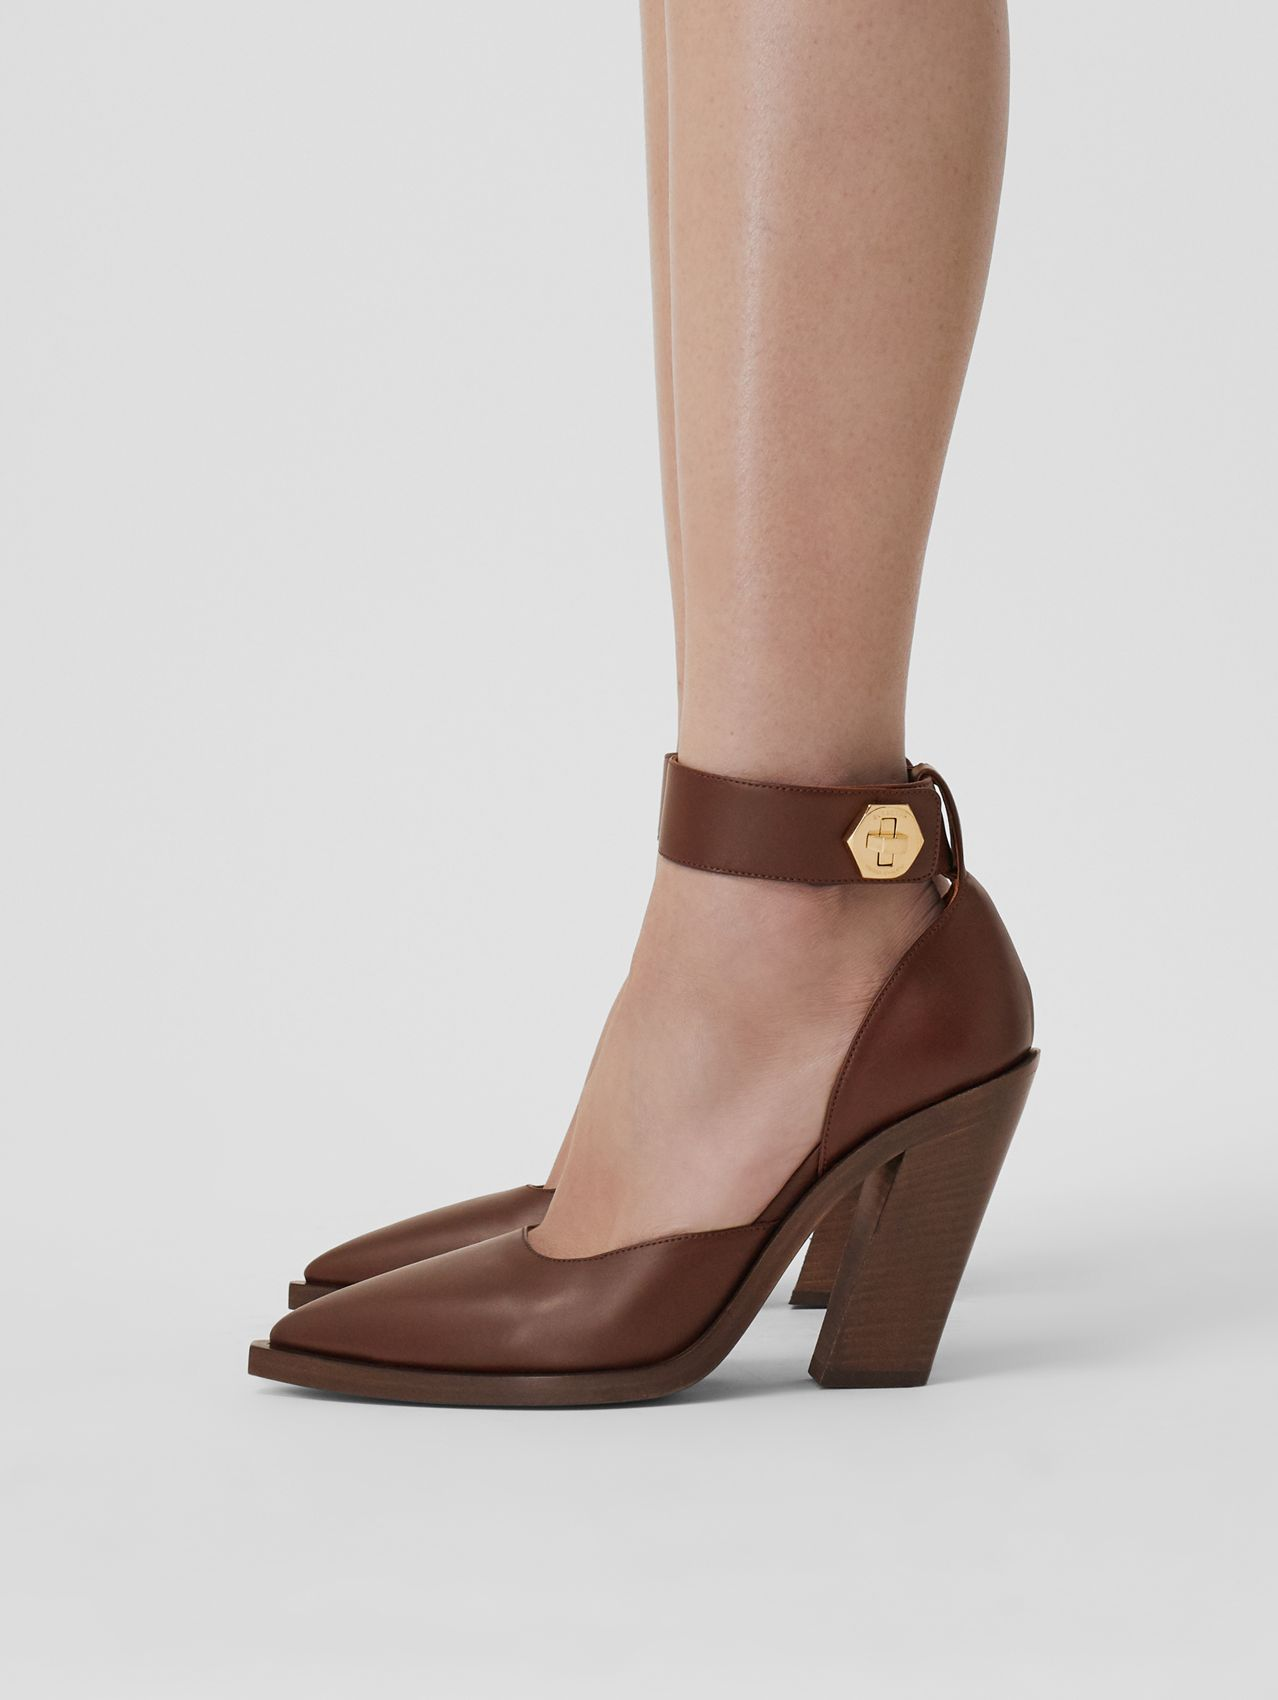 Leather Point-toe Pumps in Tan